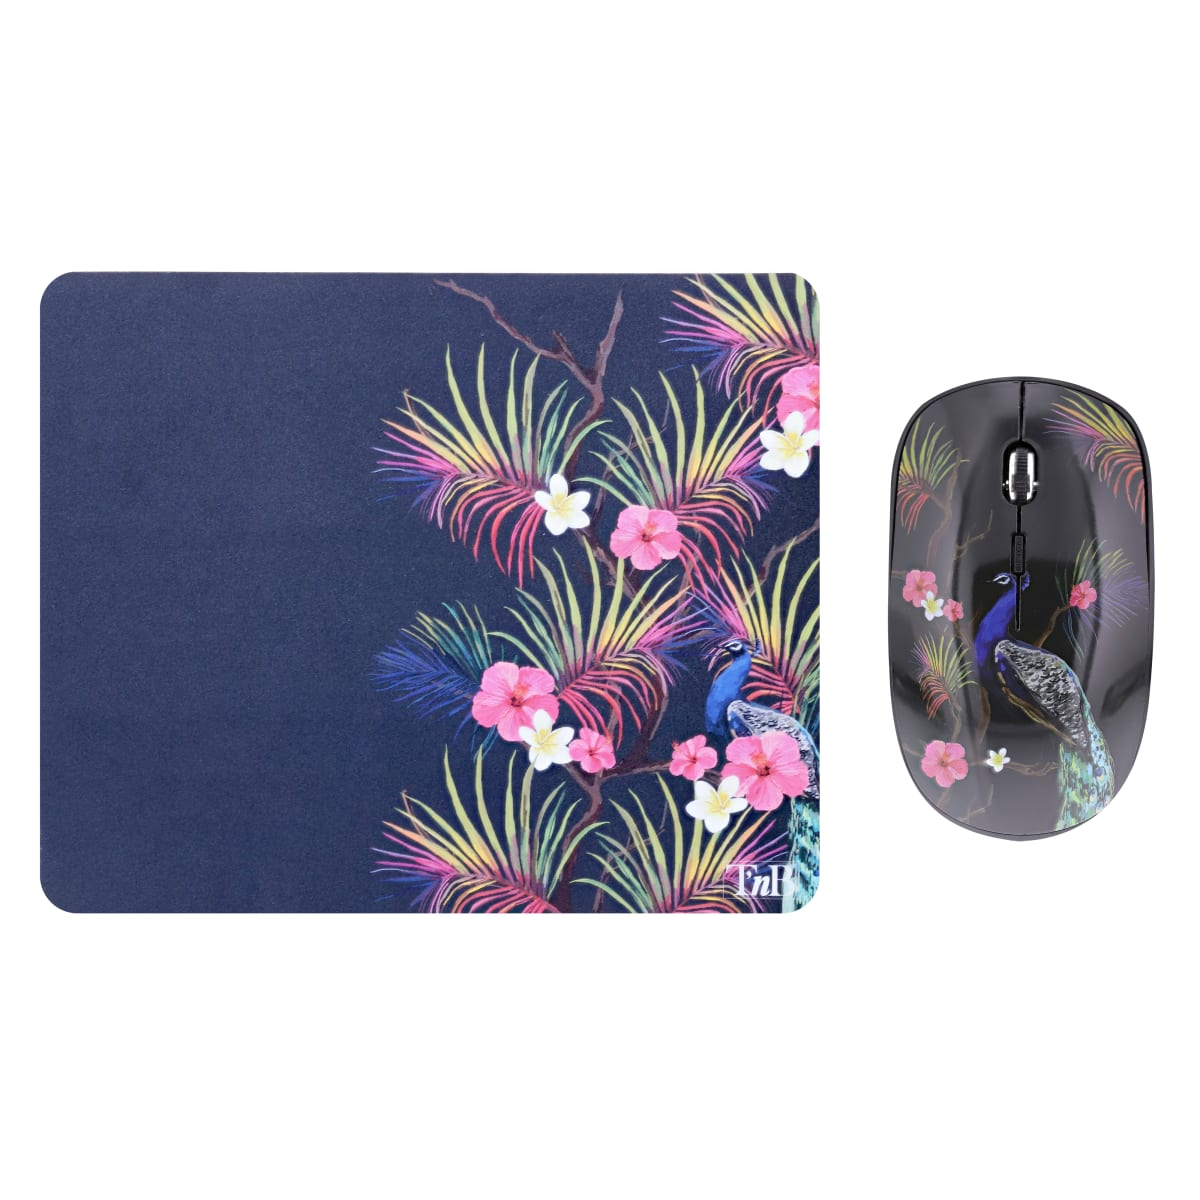 Bundle mouse pad and wireless mouse COPACABANA EXCLUSIV